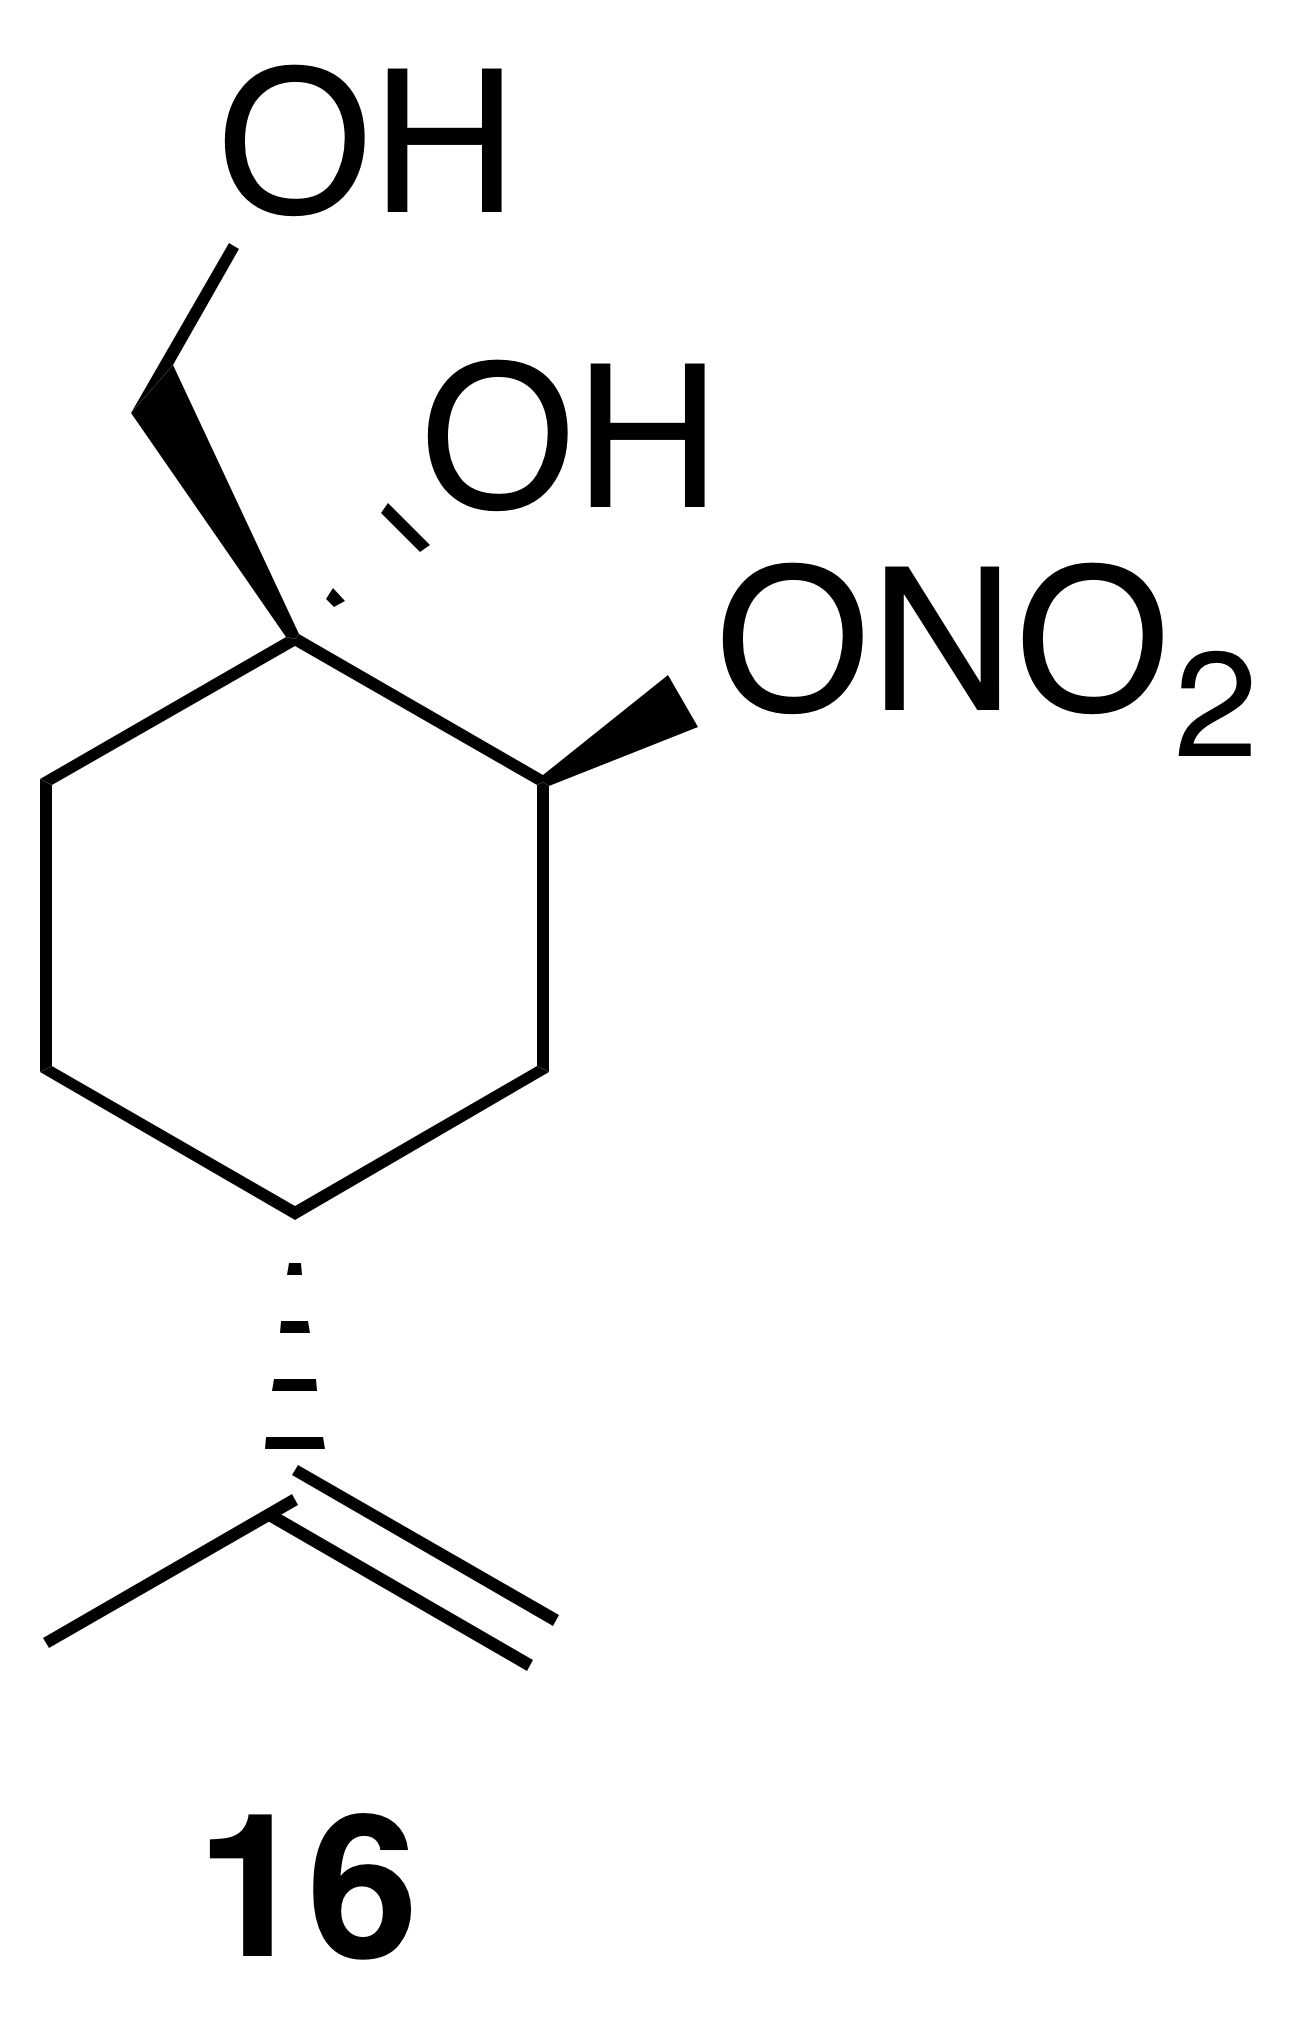 https://www.atmos-chem-phys.net/20/4241/2020/acp-20-4241-2020-g14